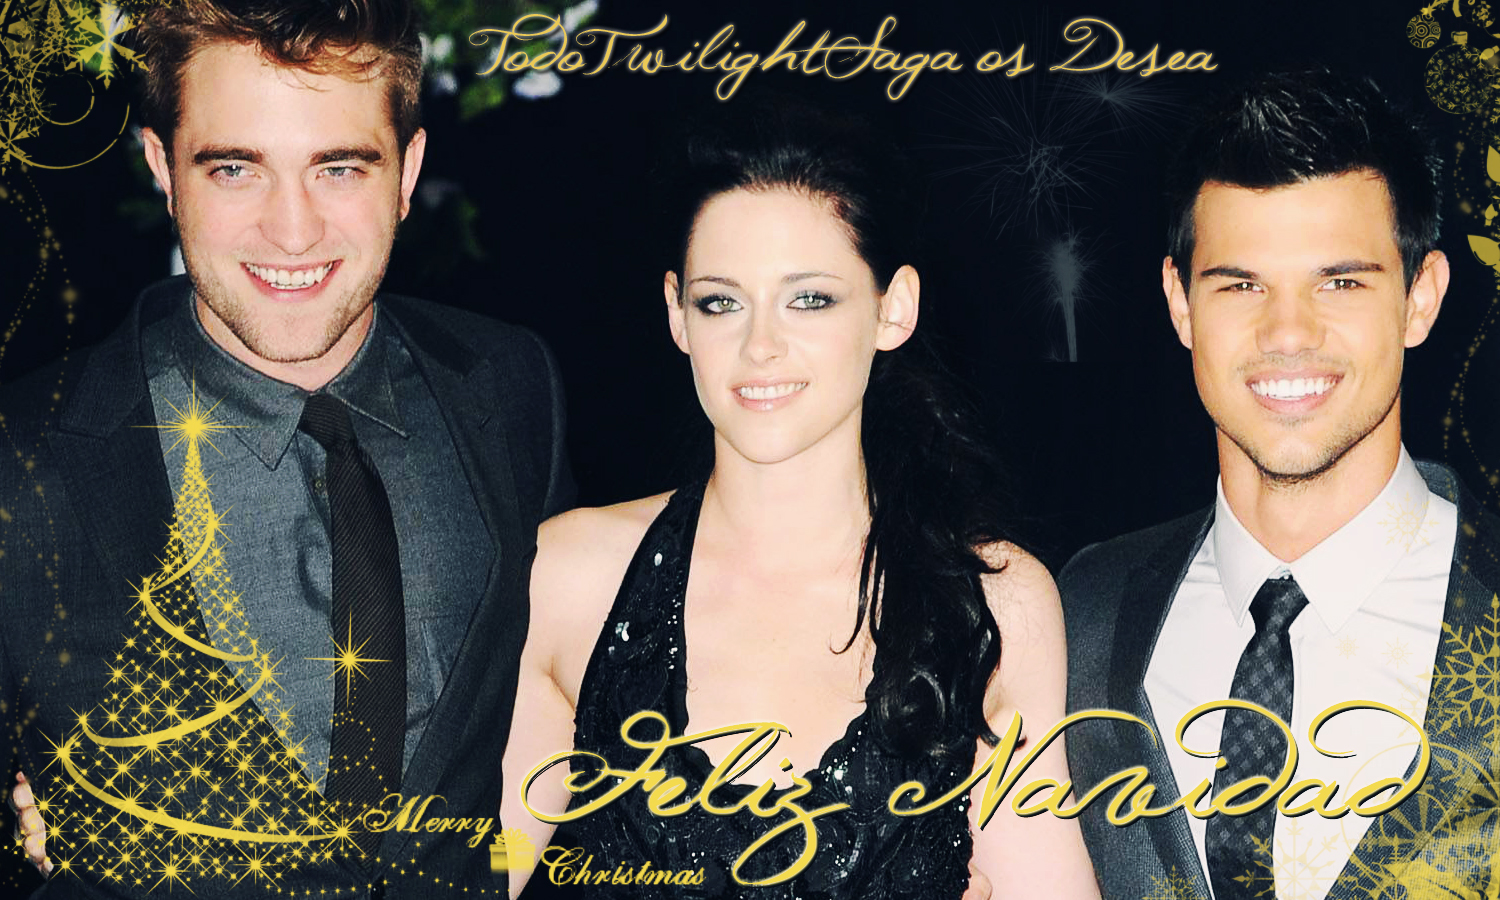 http://todotwilightsaga.files.wordpress.com/2011/12/sin-tc3adtulo-1.jpg